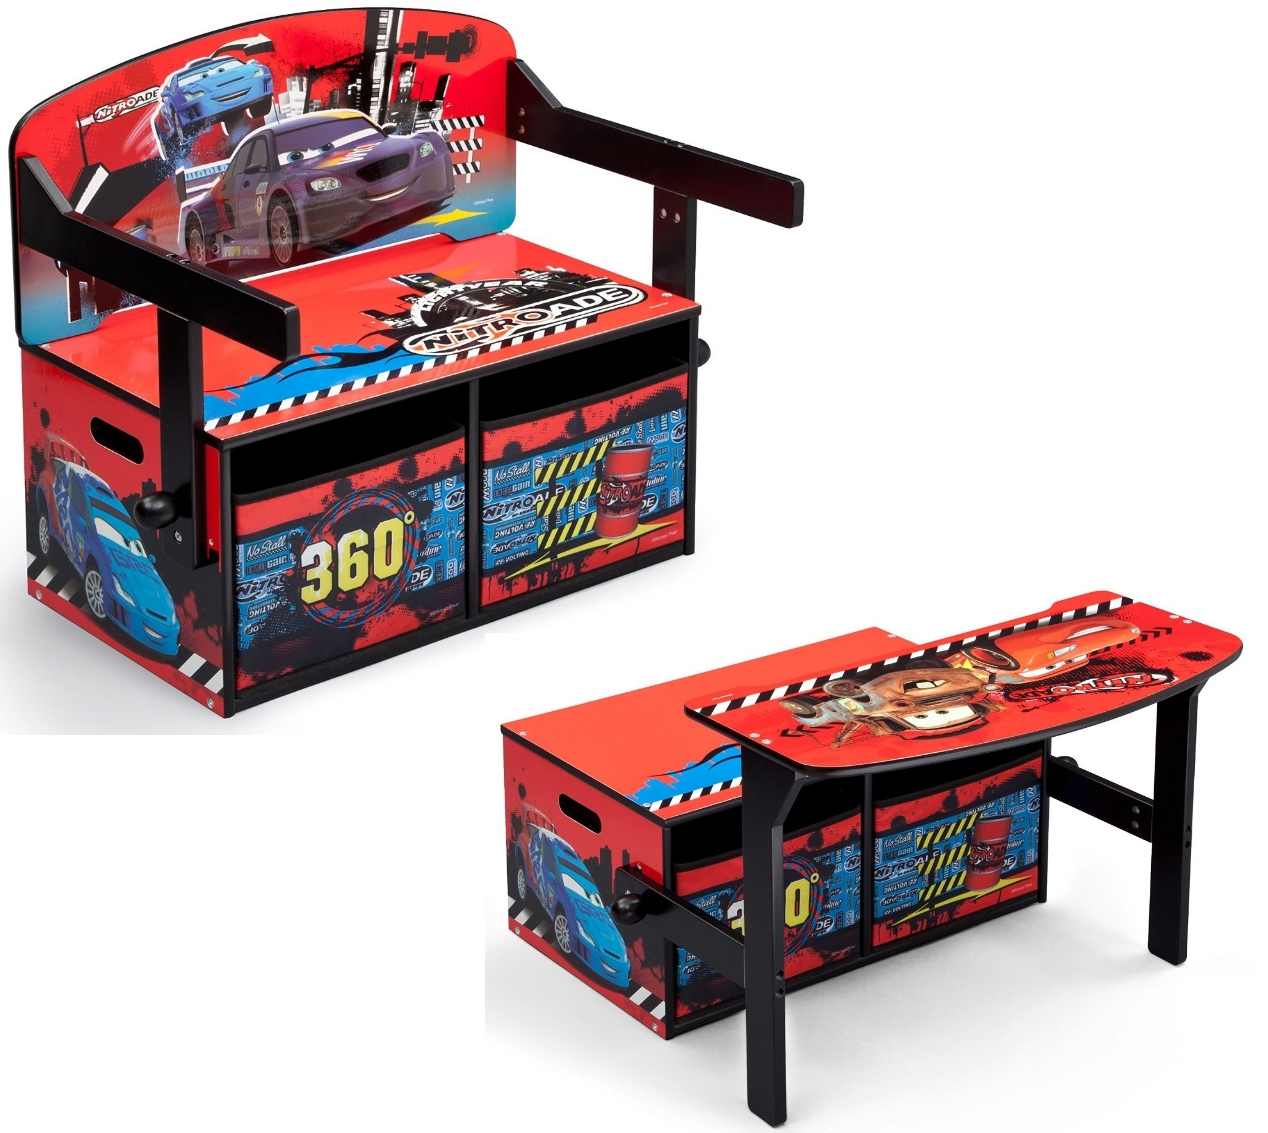 kinderbank disney cars 3in1 bank tisch aufbewahrung spielzeugkiste truhe holz ebay. Black Bedroom Furniture Sets. Home Design Ideas